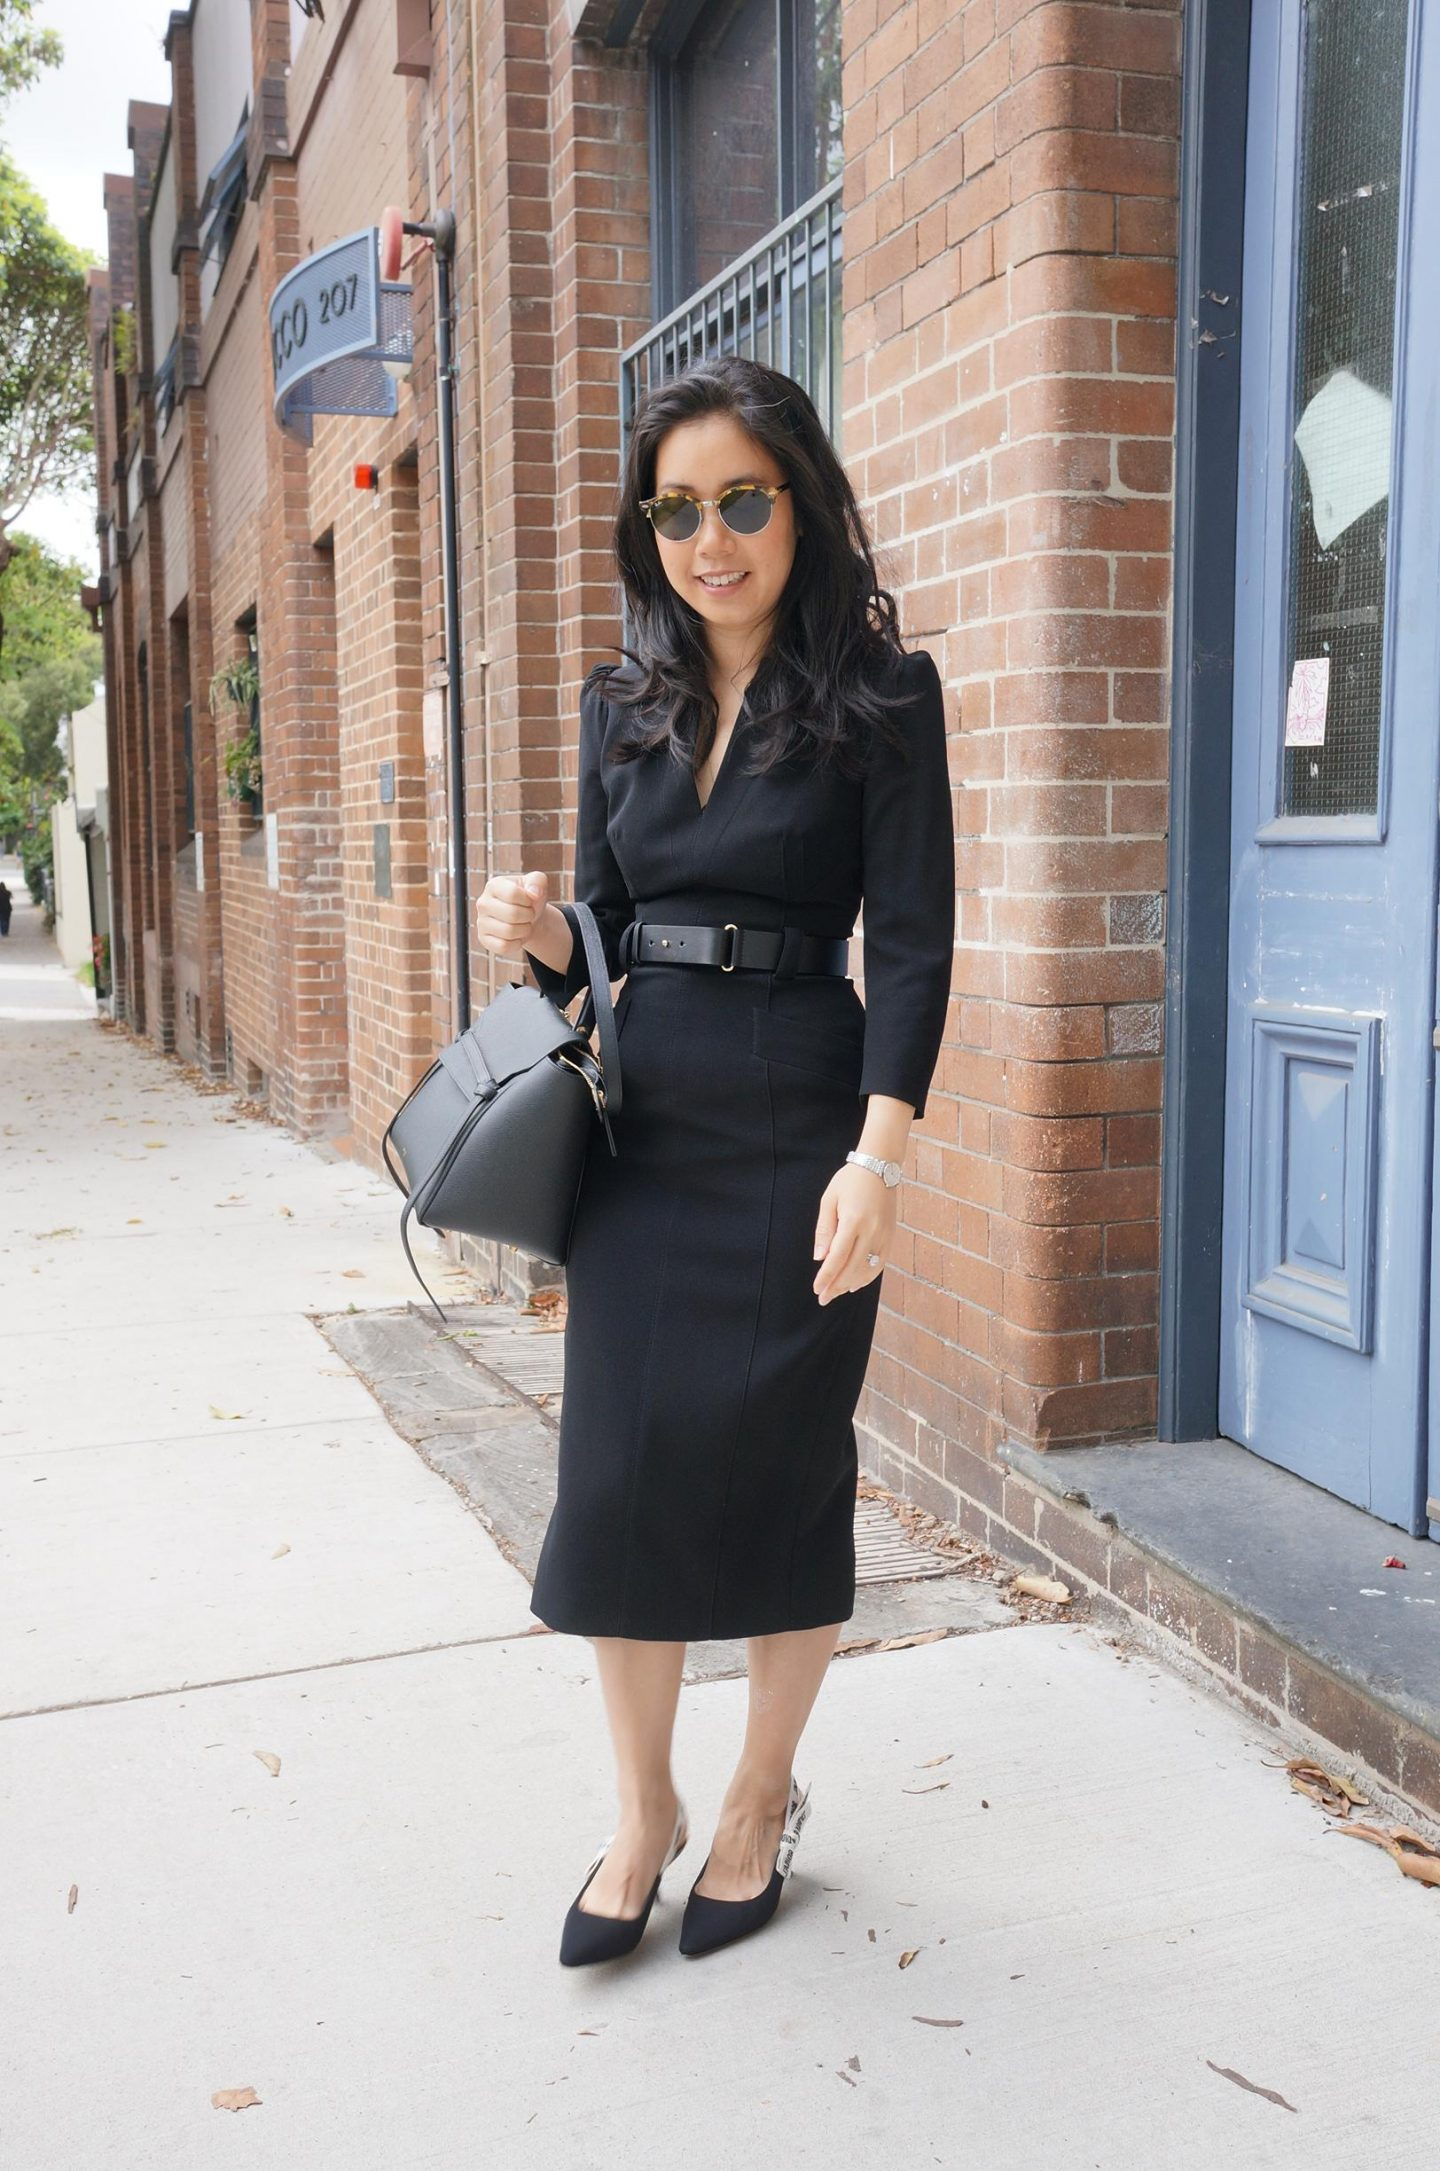 karen millen forever dress styled in blog post about setting clothing budgets